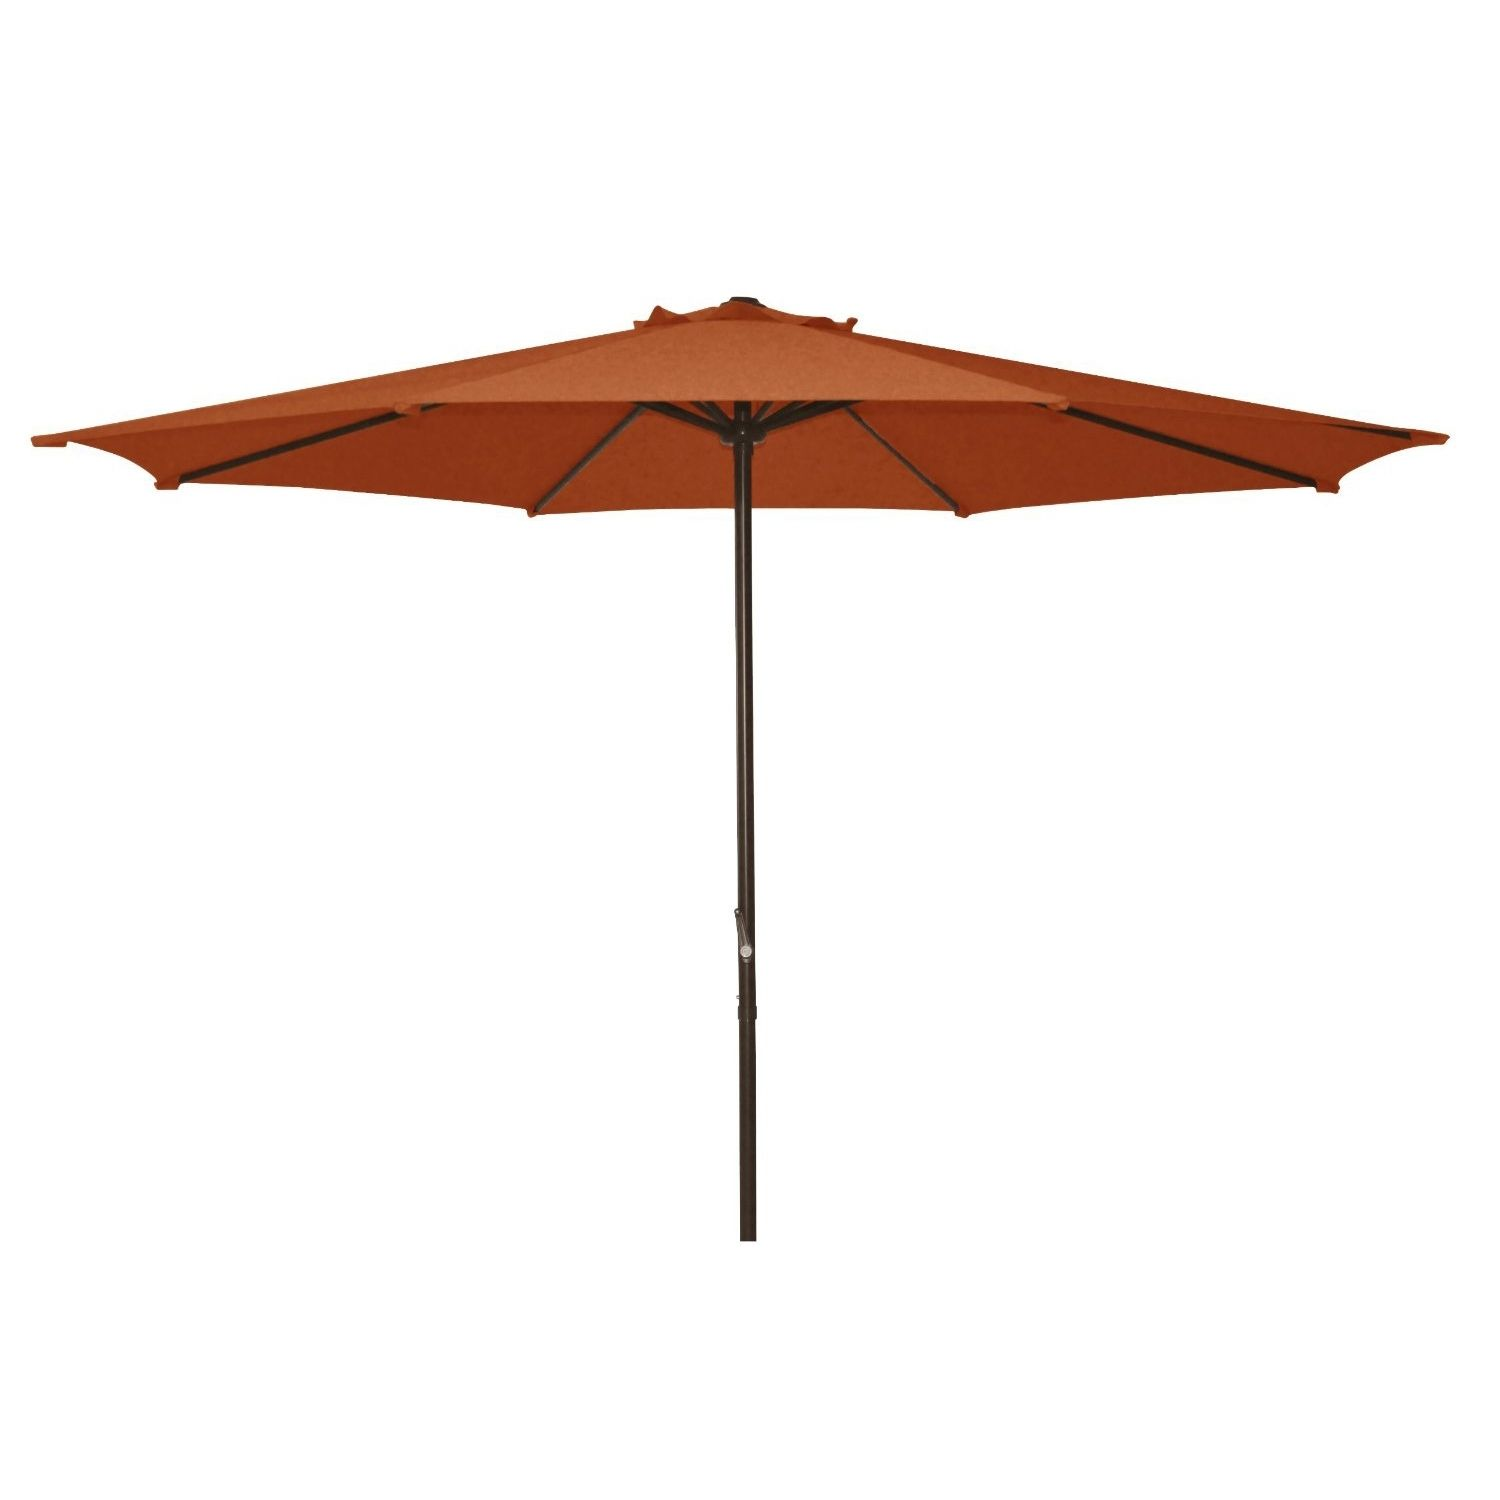 The 9 Ft Polyester Shade Market Umbrella Patio Umbrella With Crank Open  System Is Perfect For